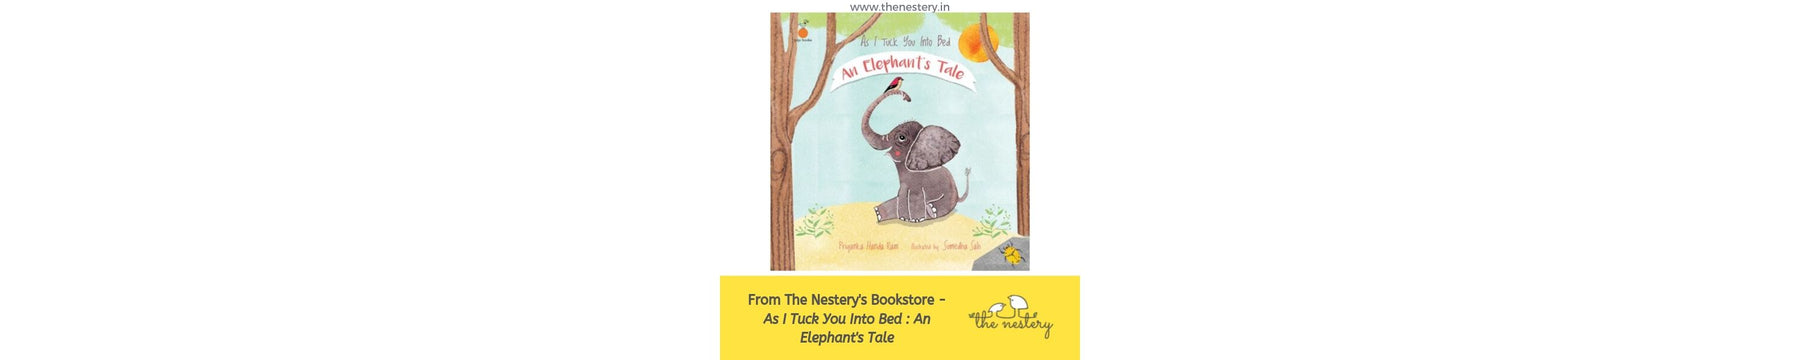 Book Review - As I Tuck You Into Bed : An Elephant's Tale